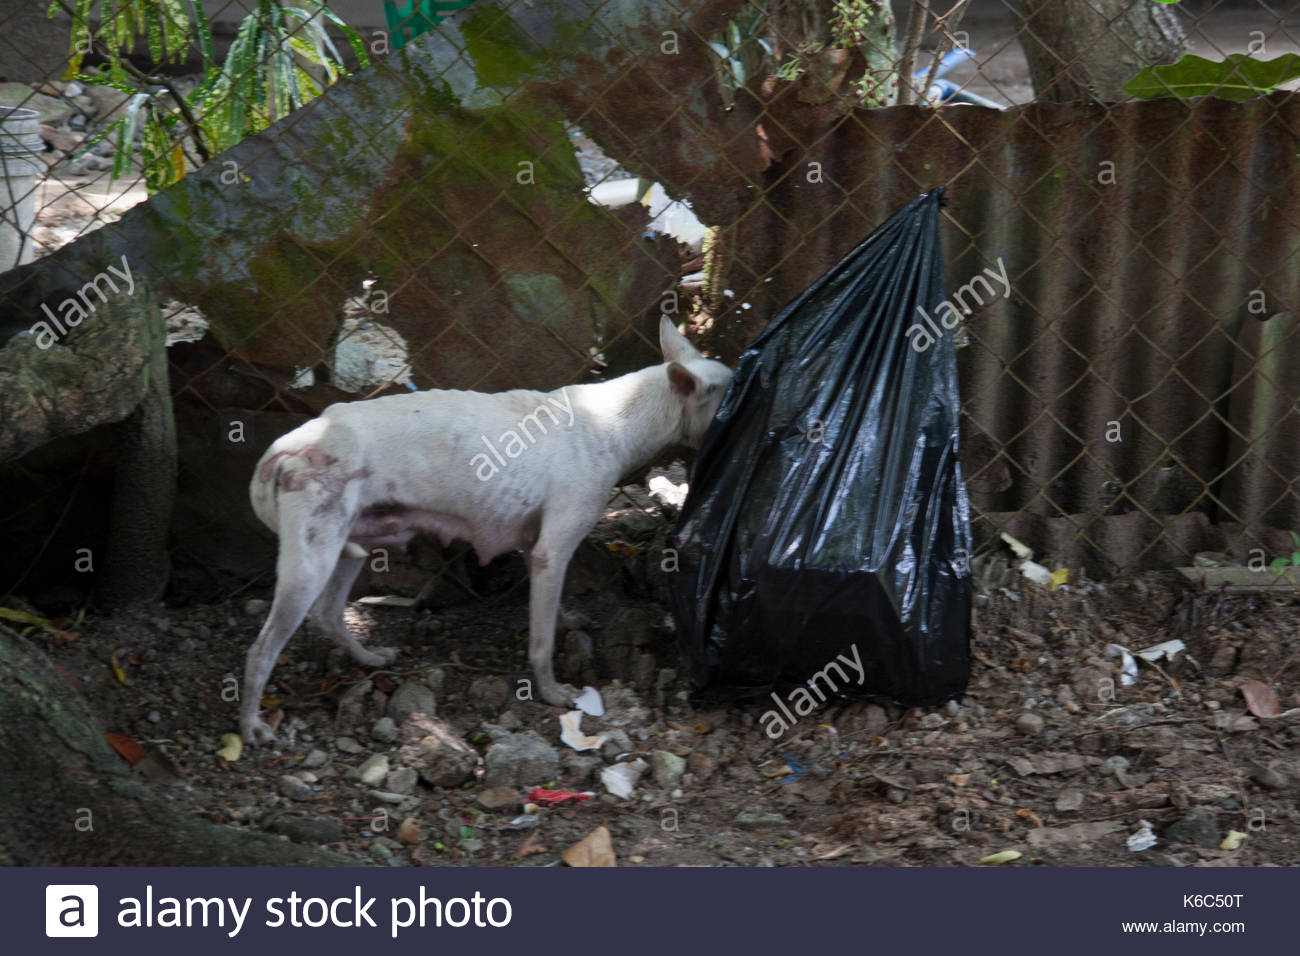 stray dog is looking for food in a rubbish bag - Stock Image